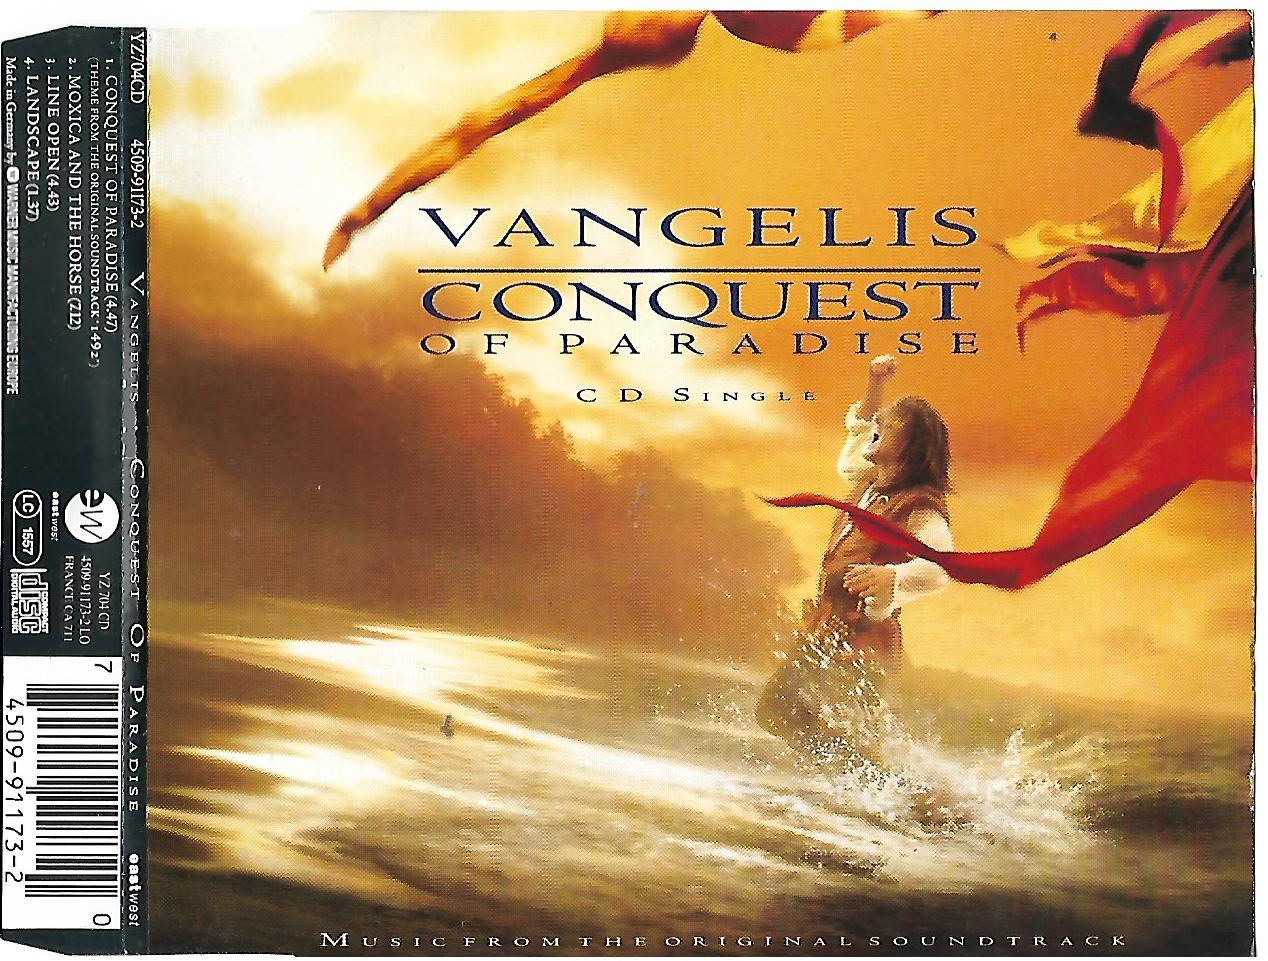 VANGELIS - Conquest of paradise 4 Tracks jewel case - CD Maxi